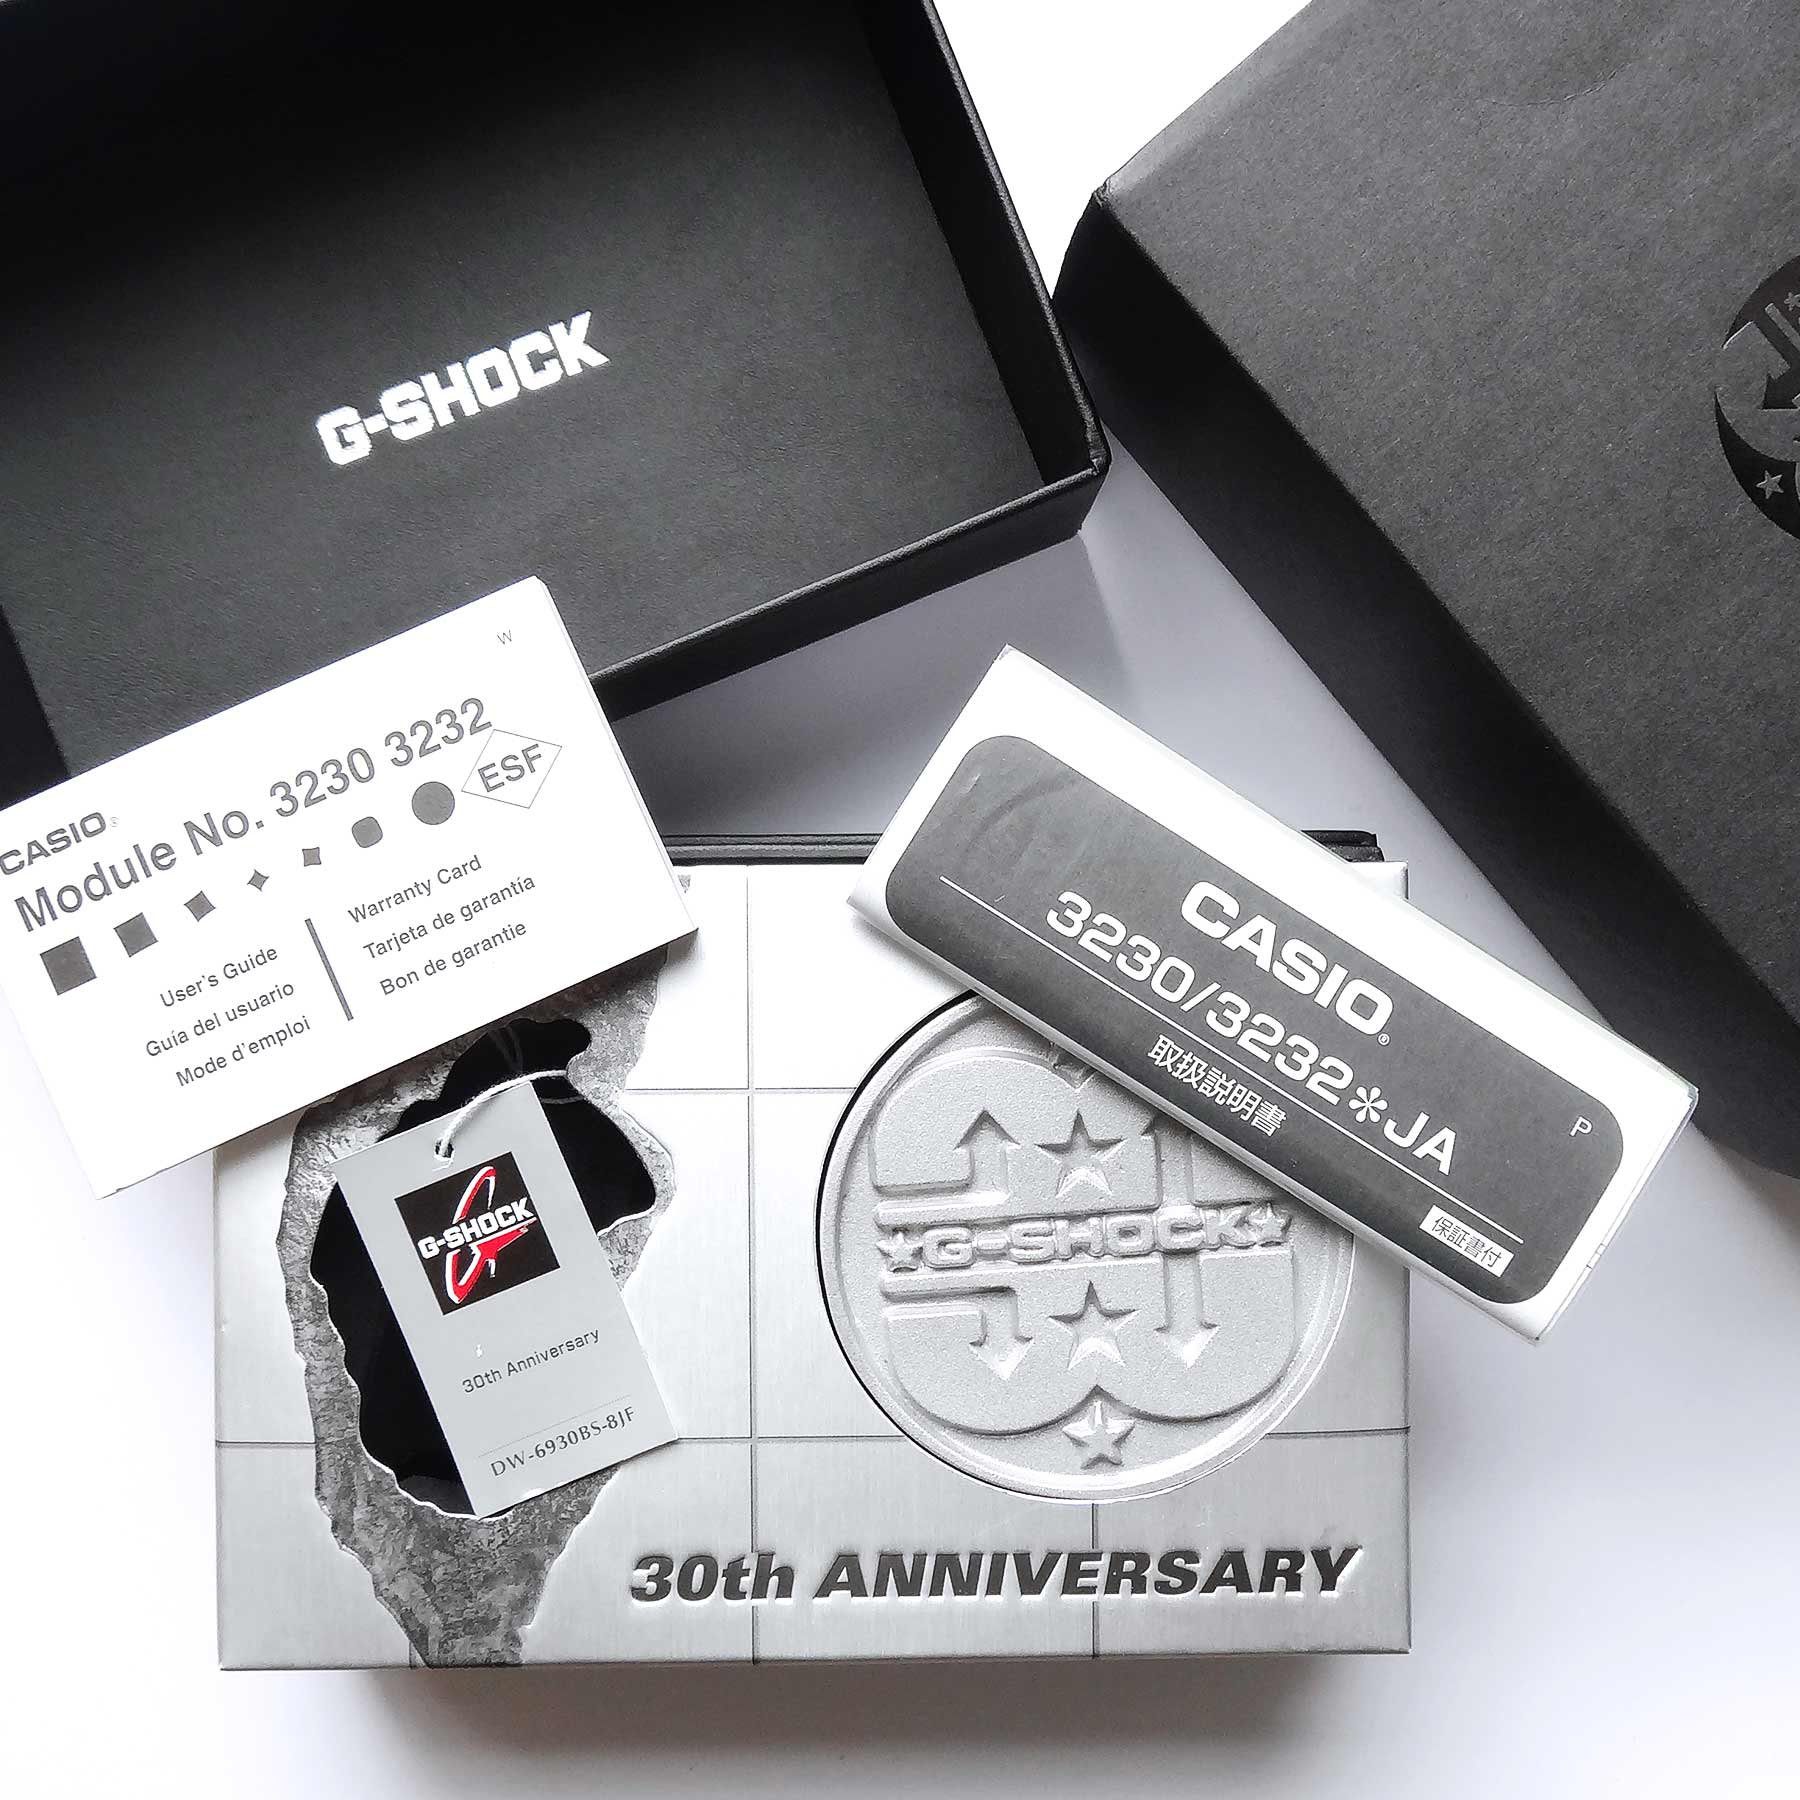 Casio G-Shock 30th Anniversary Baselworld Set for the Serious Gshockers